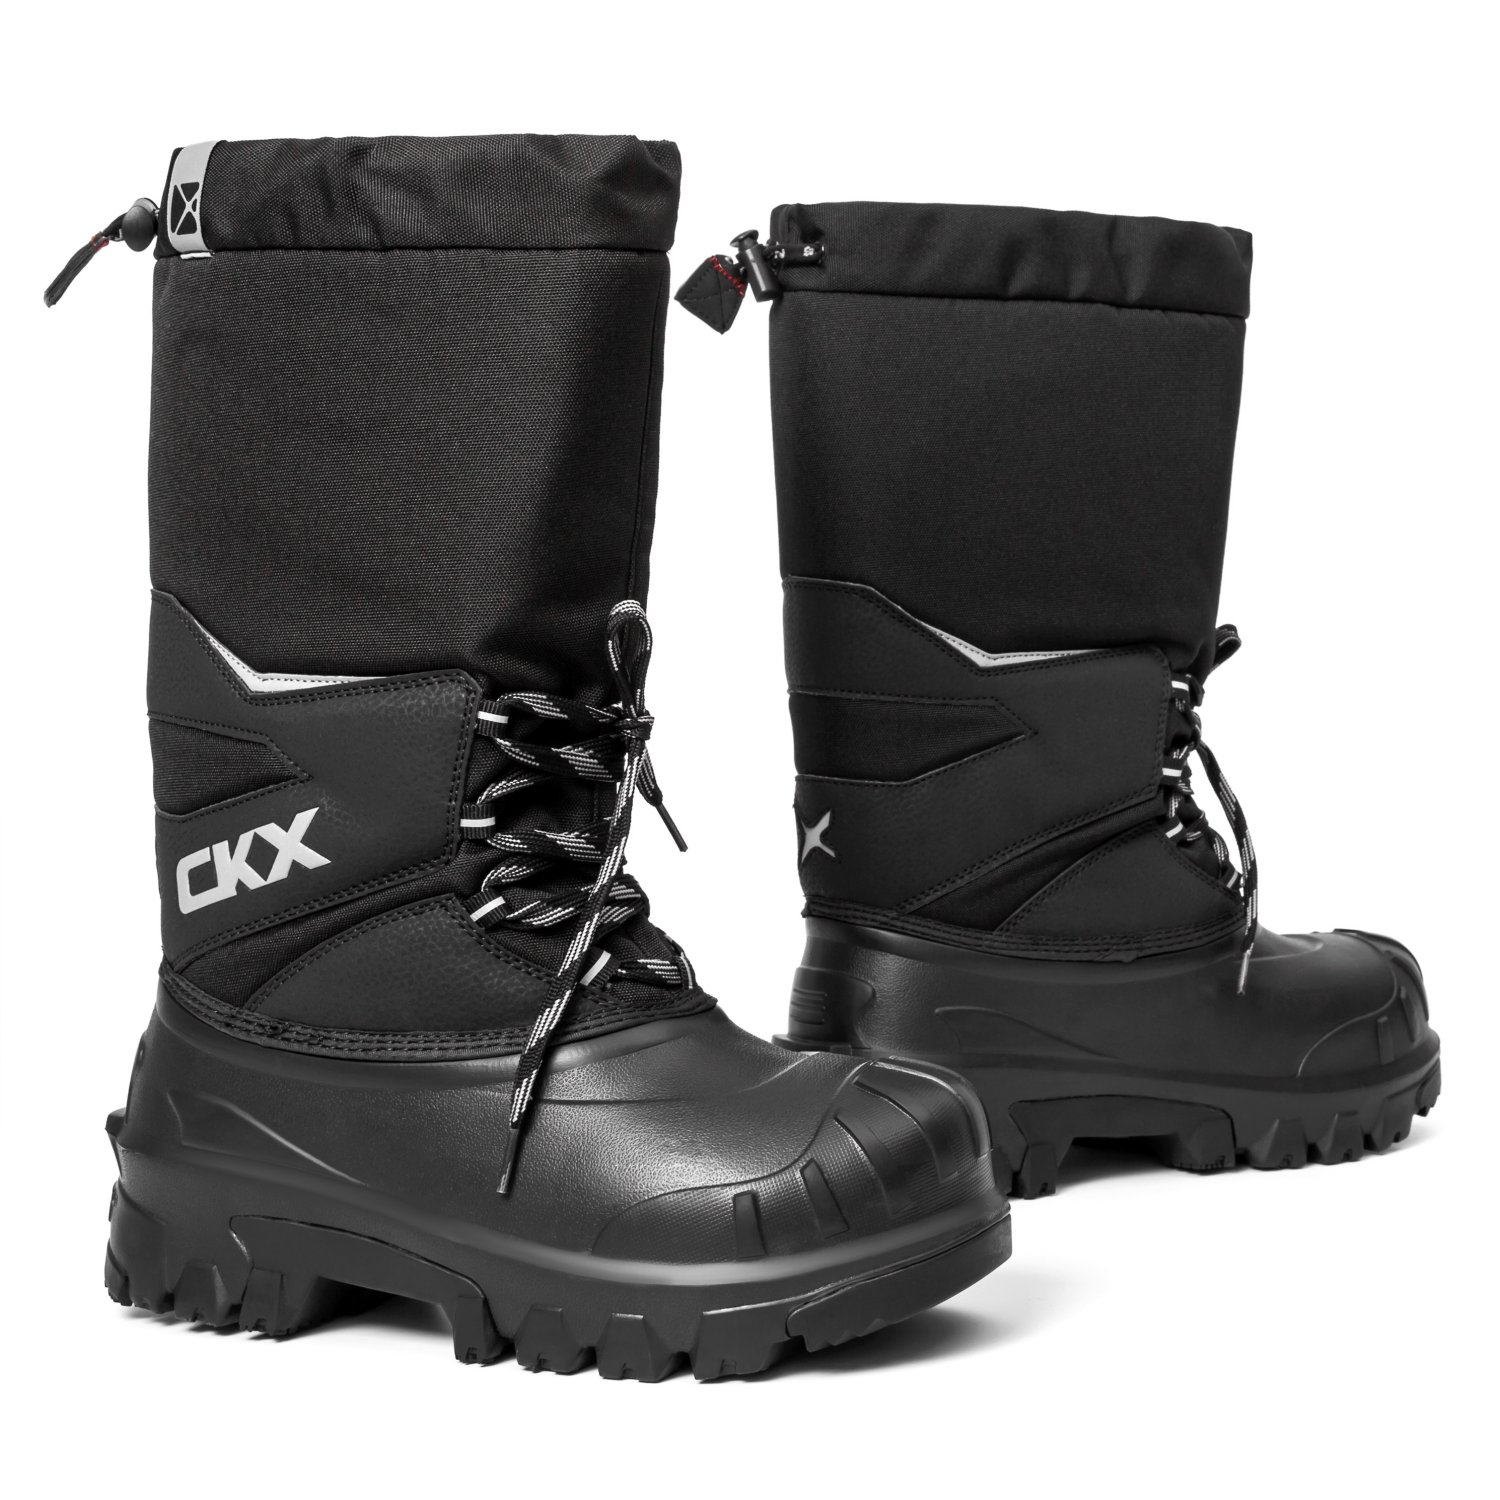 Men CKX Evolution Muk Lite Boots Part# 1989-BK-10 033366